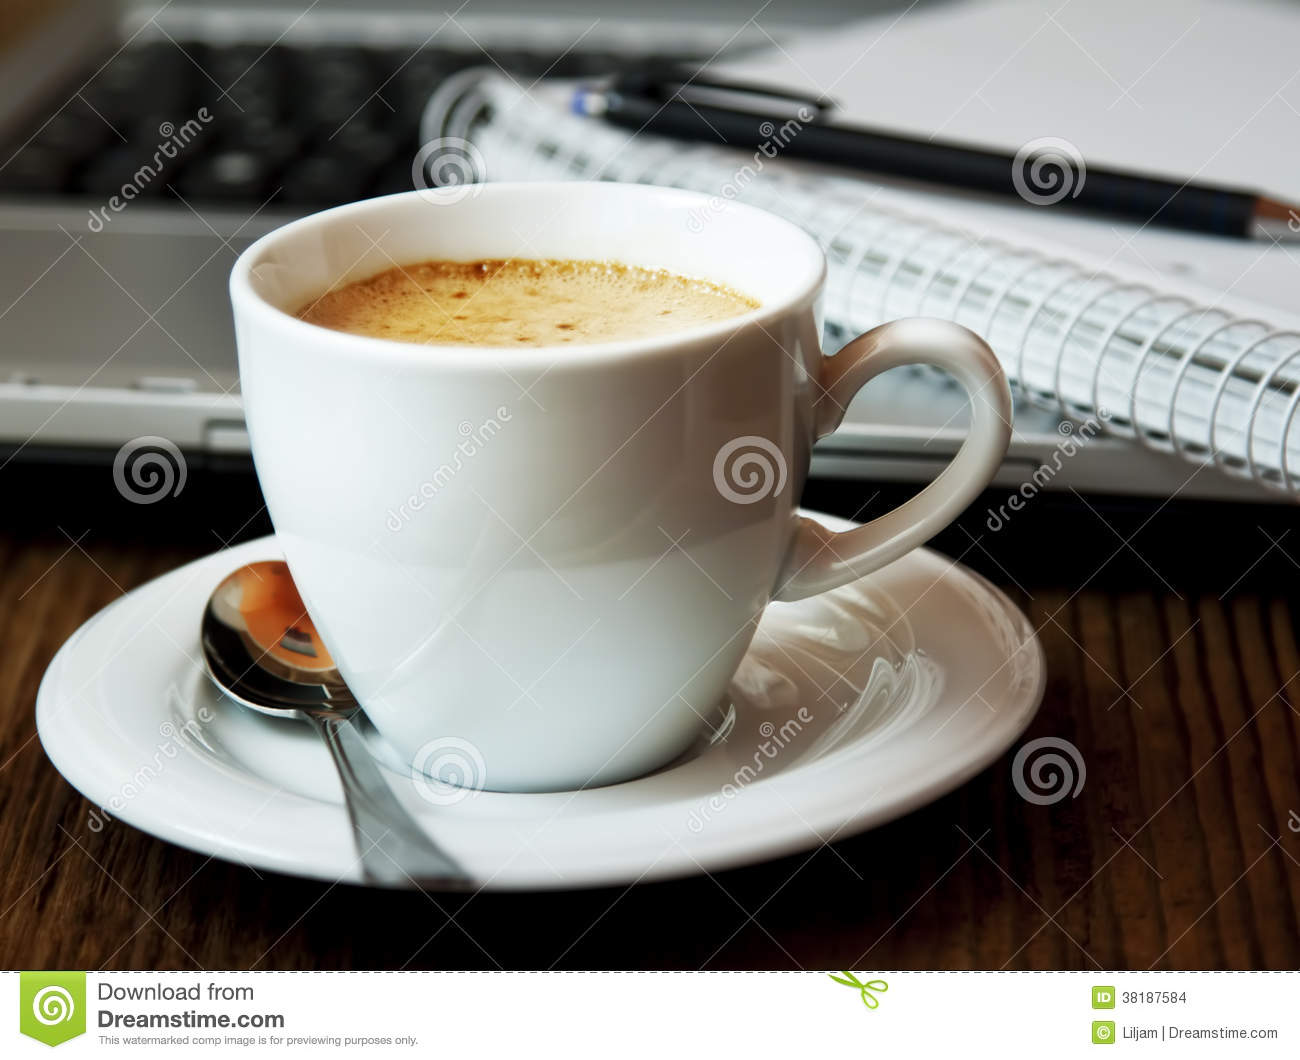 Bruch des Cappuccino-Cup.Coffee